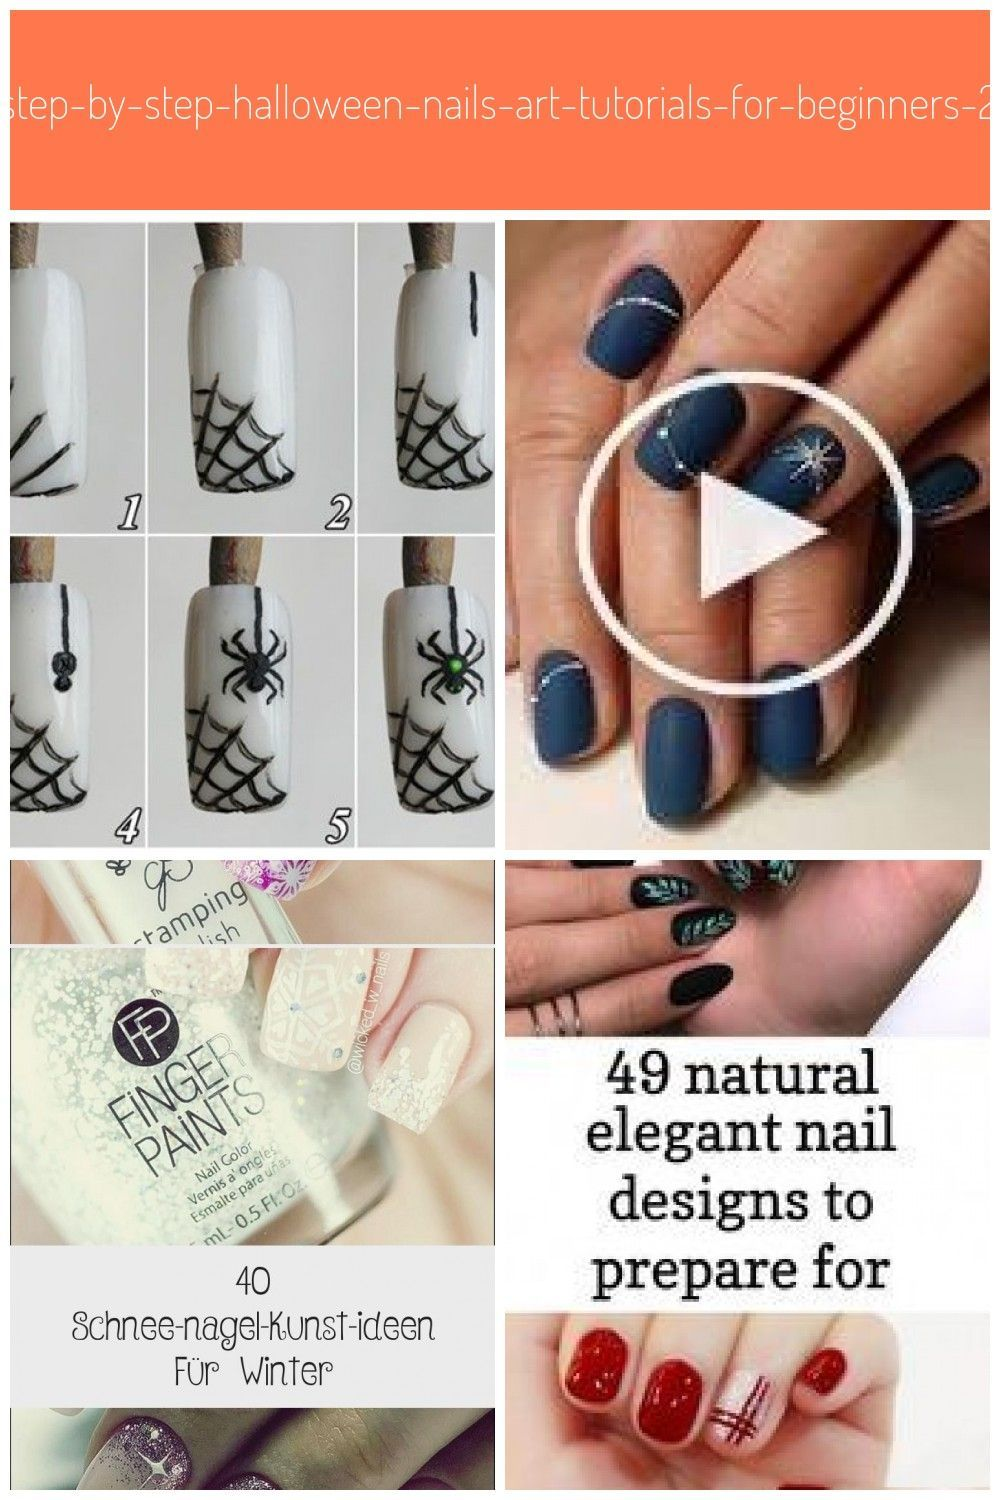 Easy Step By Step Halloween Nails Art Tutorials For Beginners 2019 3 Nails Nai Katze Easystepbys Halloween Nail Art Halloween Nails Nail Art Tutorial